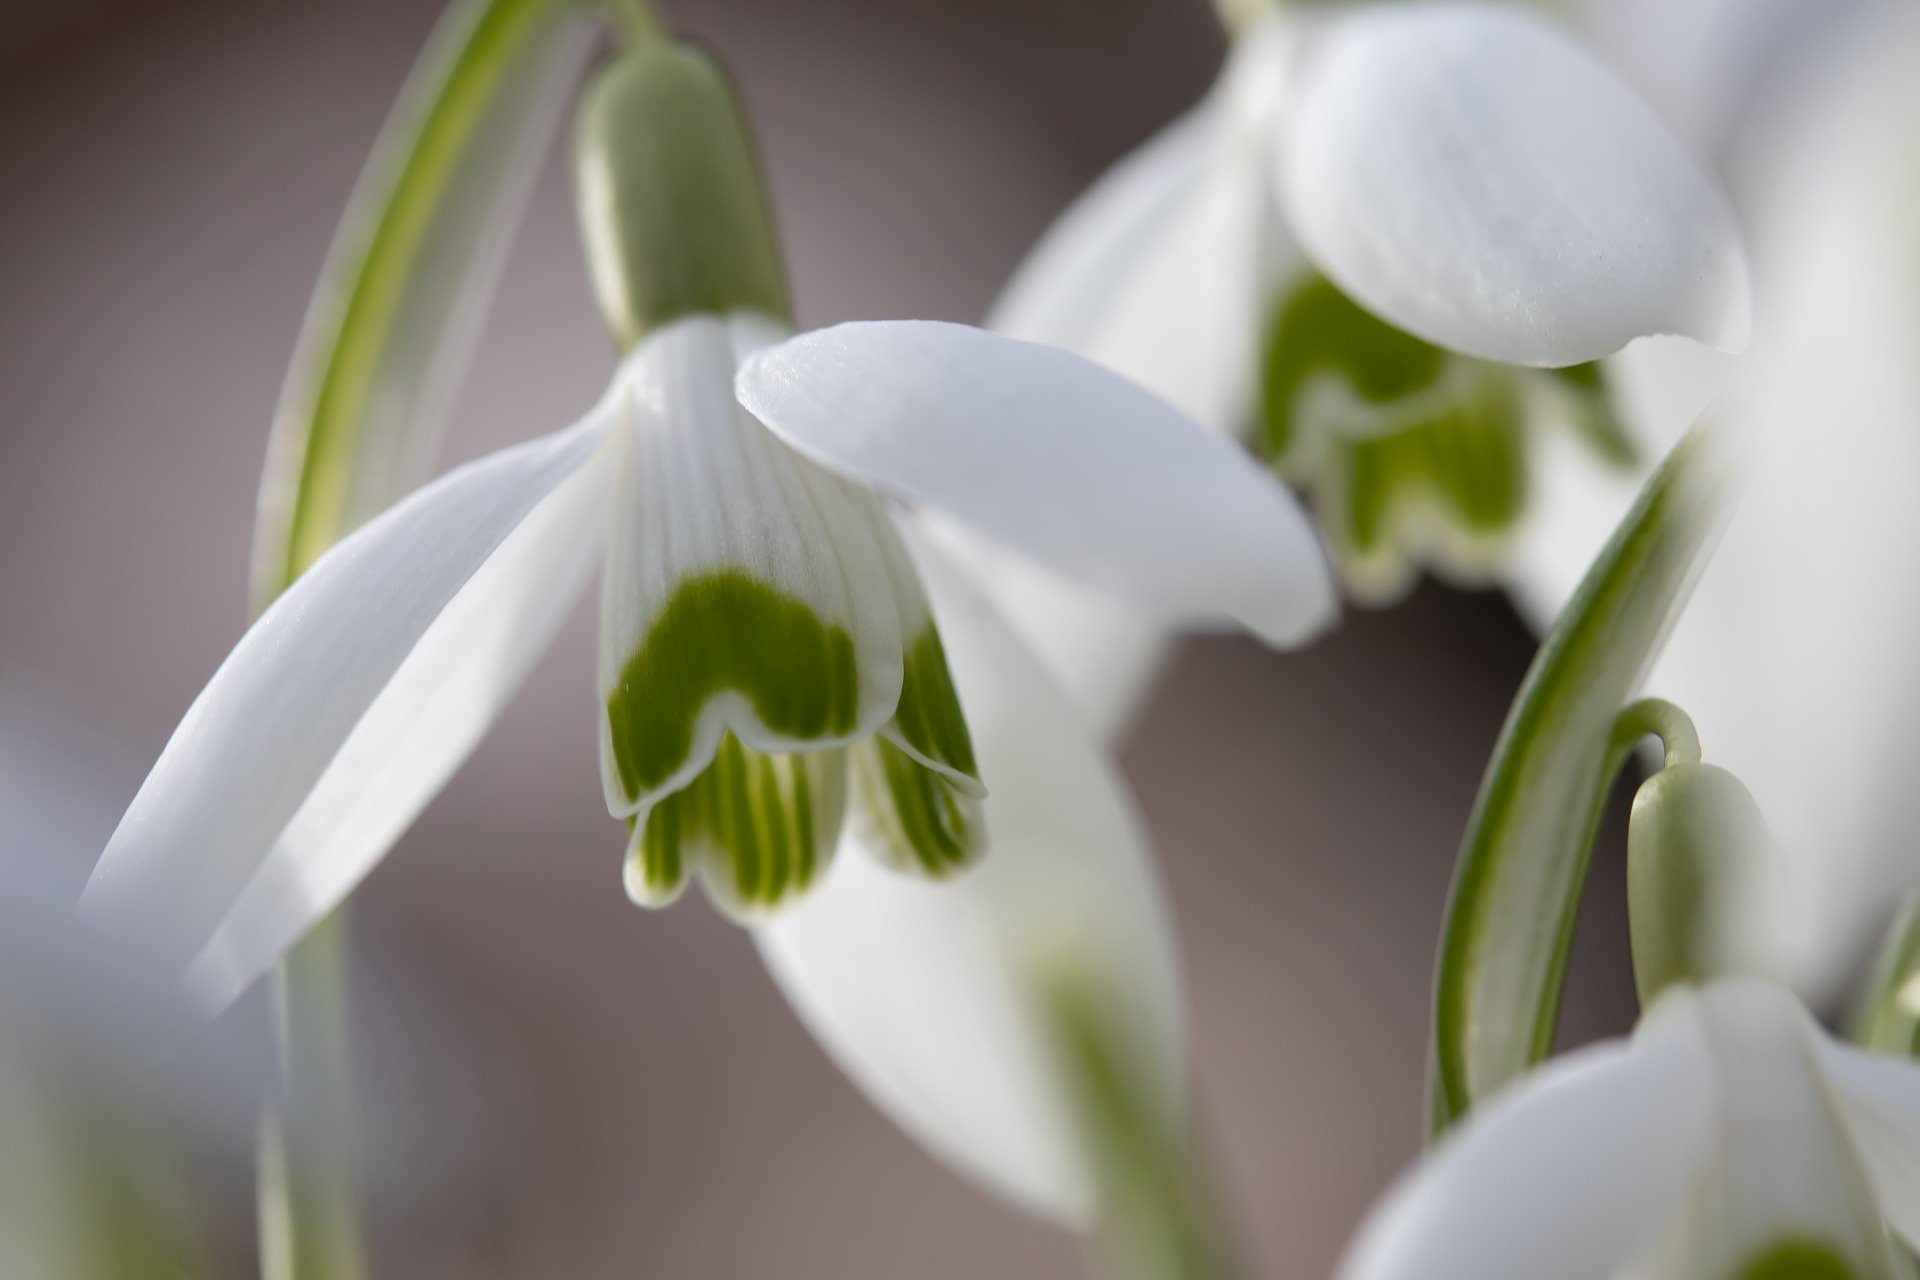 A close-up of a Snowdrop, showing the green markings on the